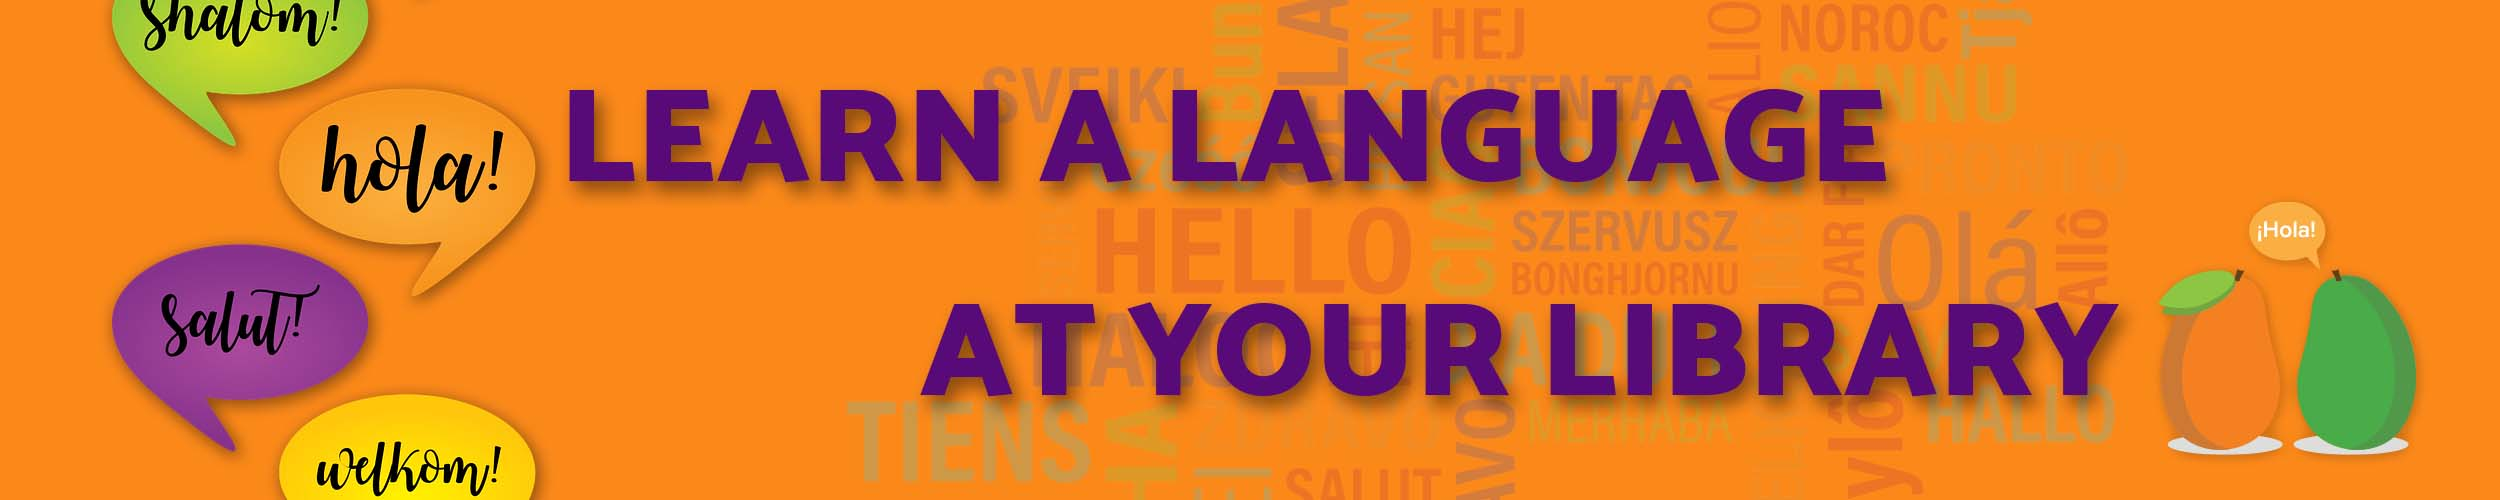 language learning page header